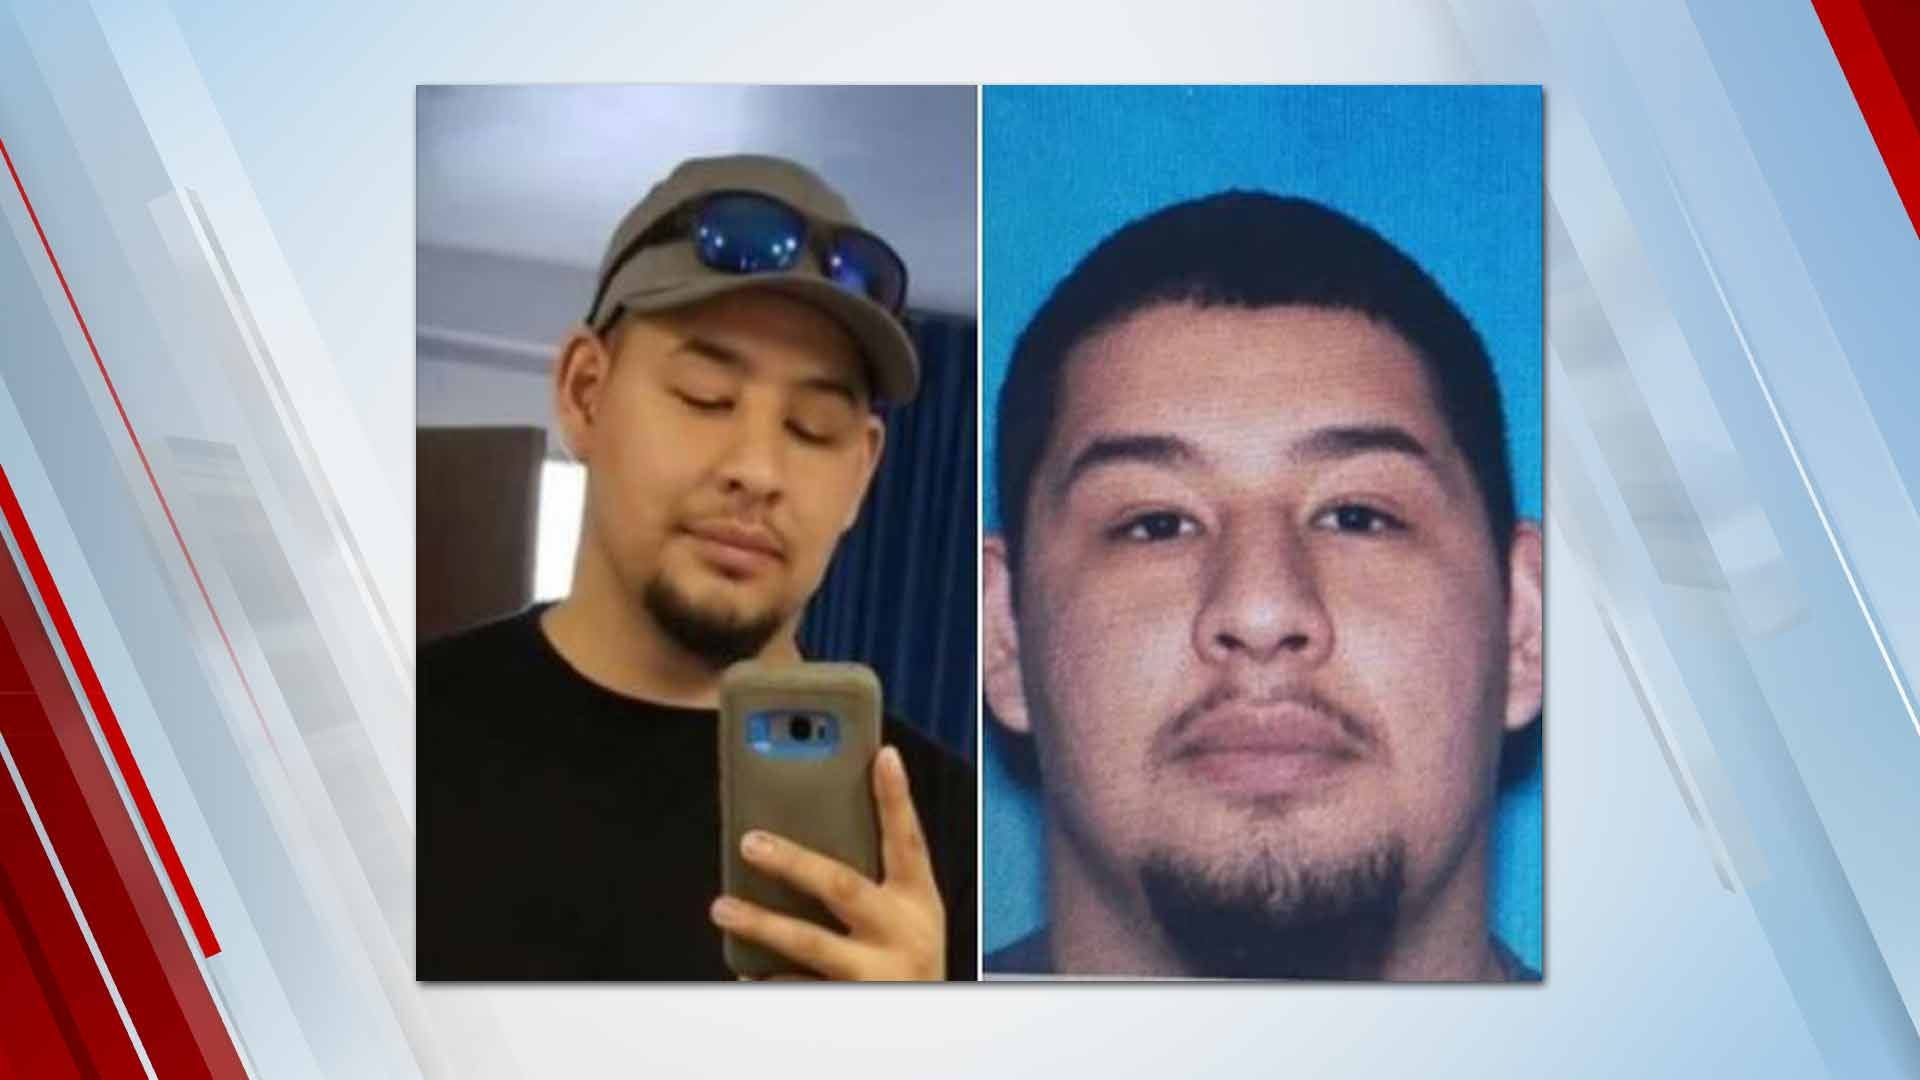 U.S. Marshals Most Wanted Sought For Child Sexual Abuse